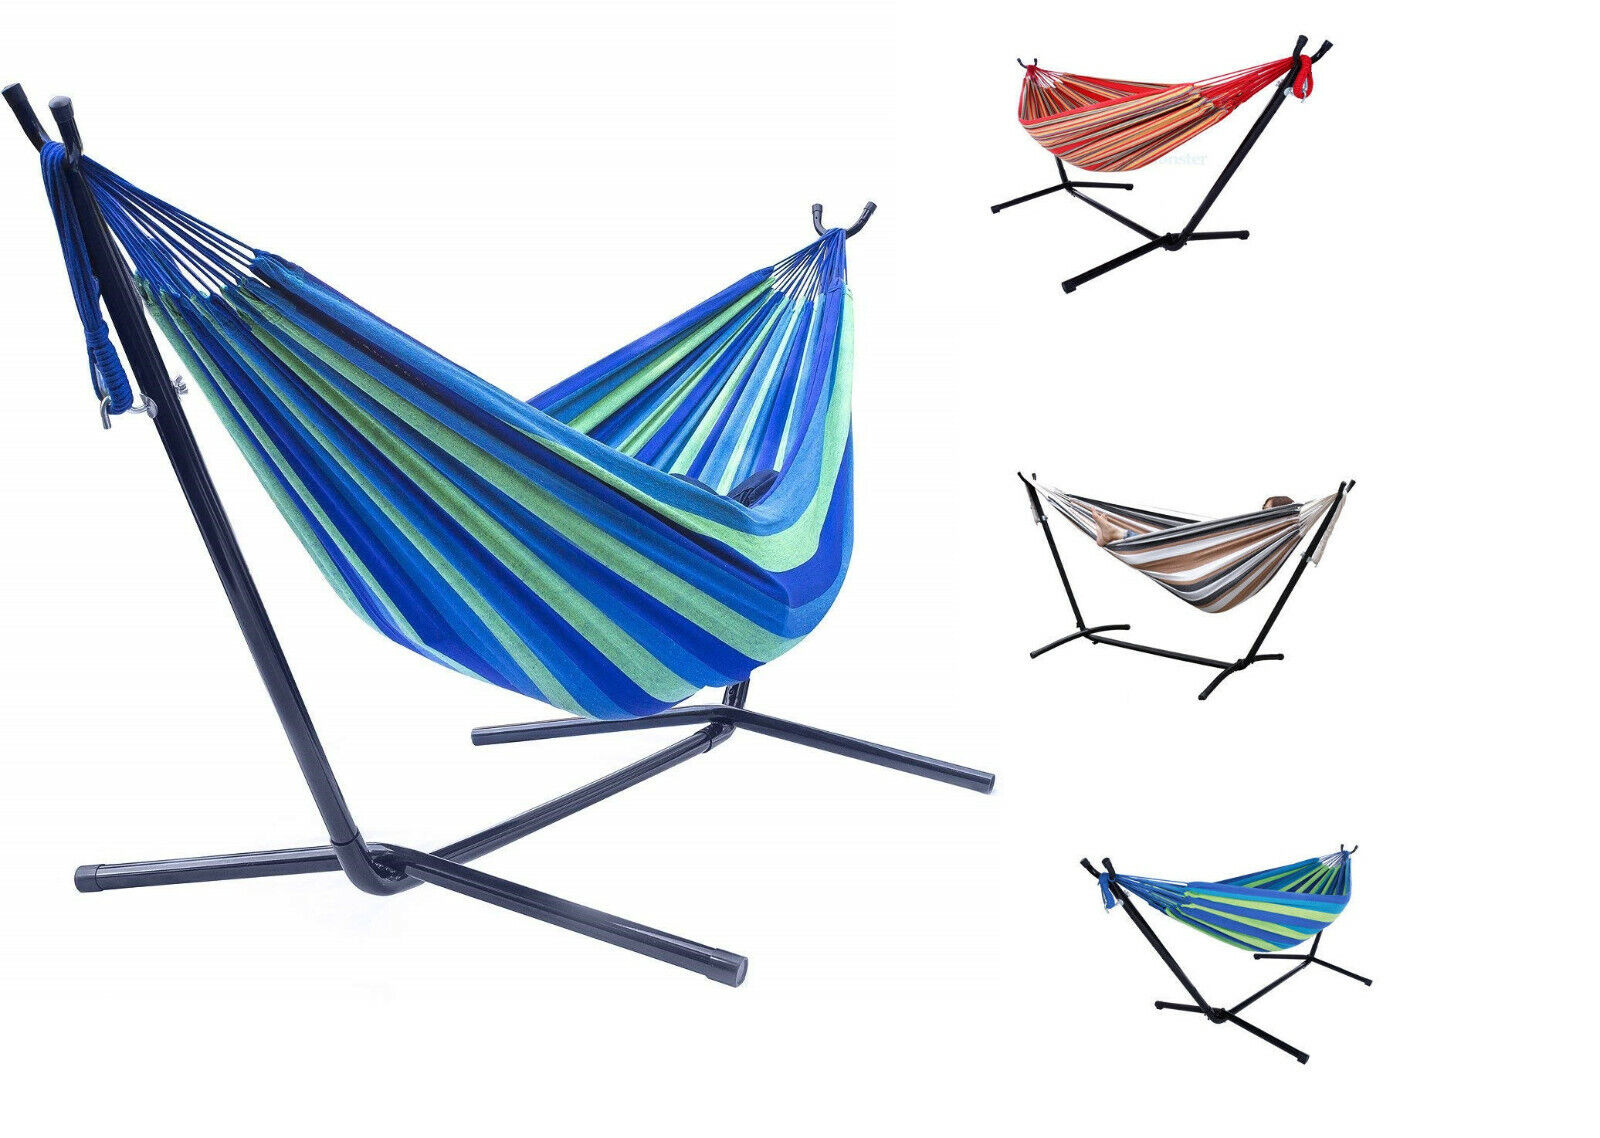 Cup Holder and Carrying Bag BCP Double Hammock Set w// Stand Tray Red Stripe